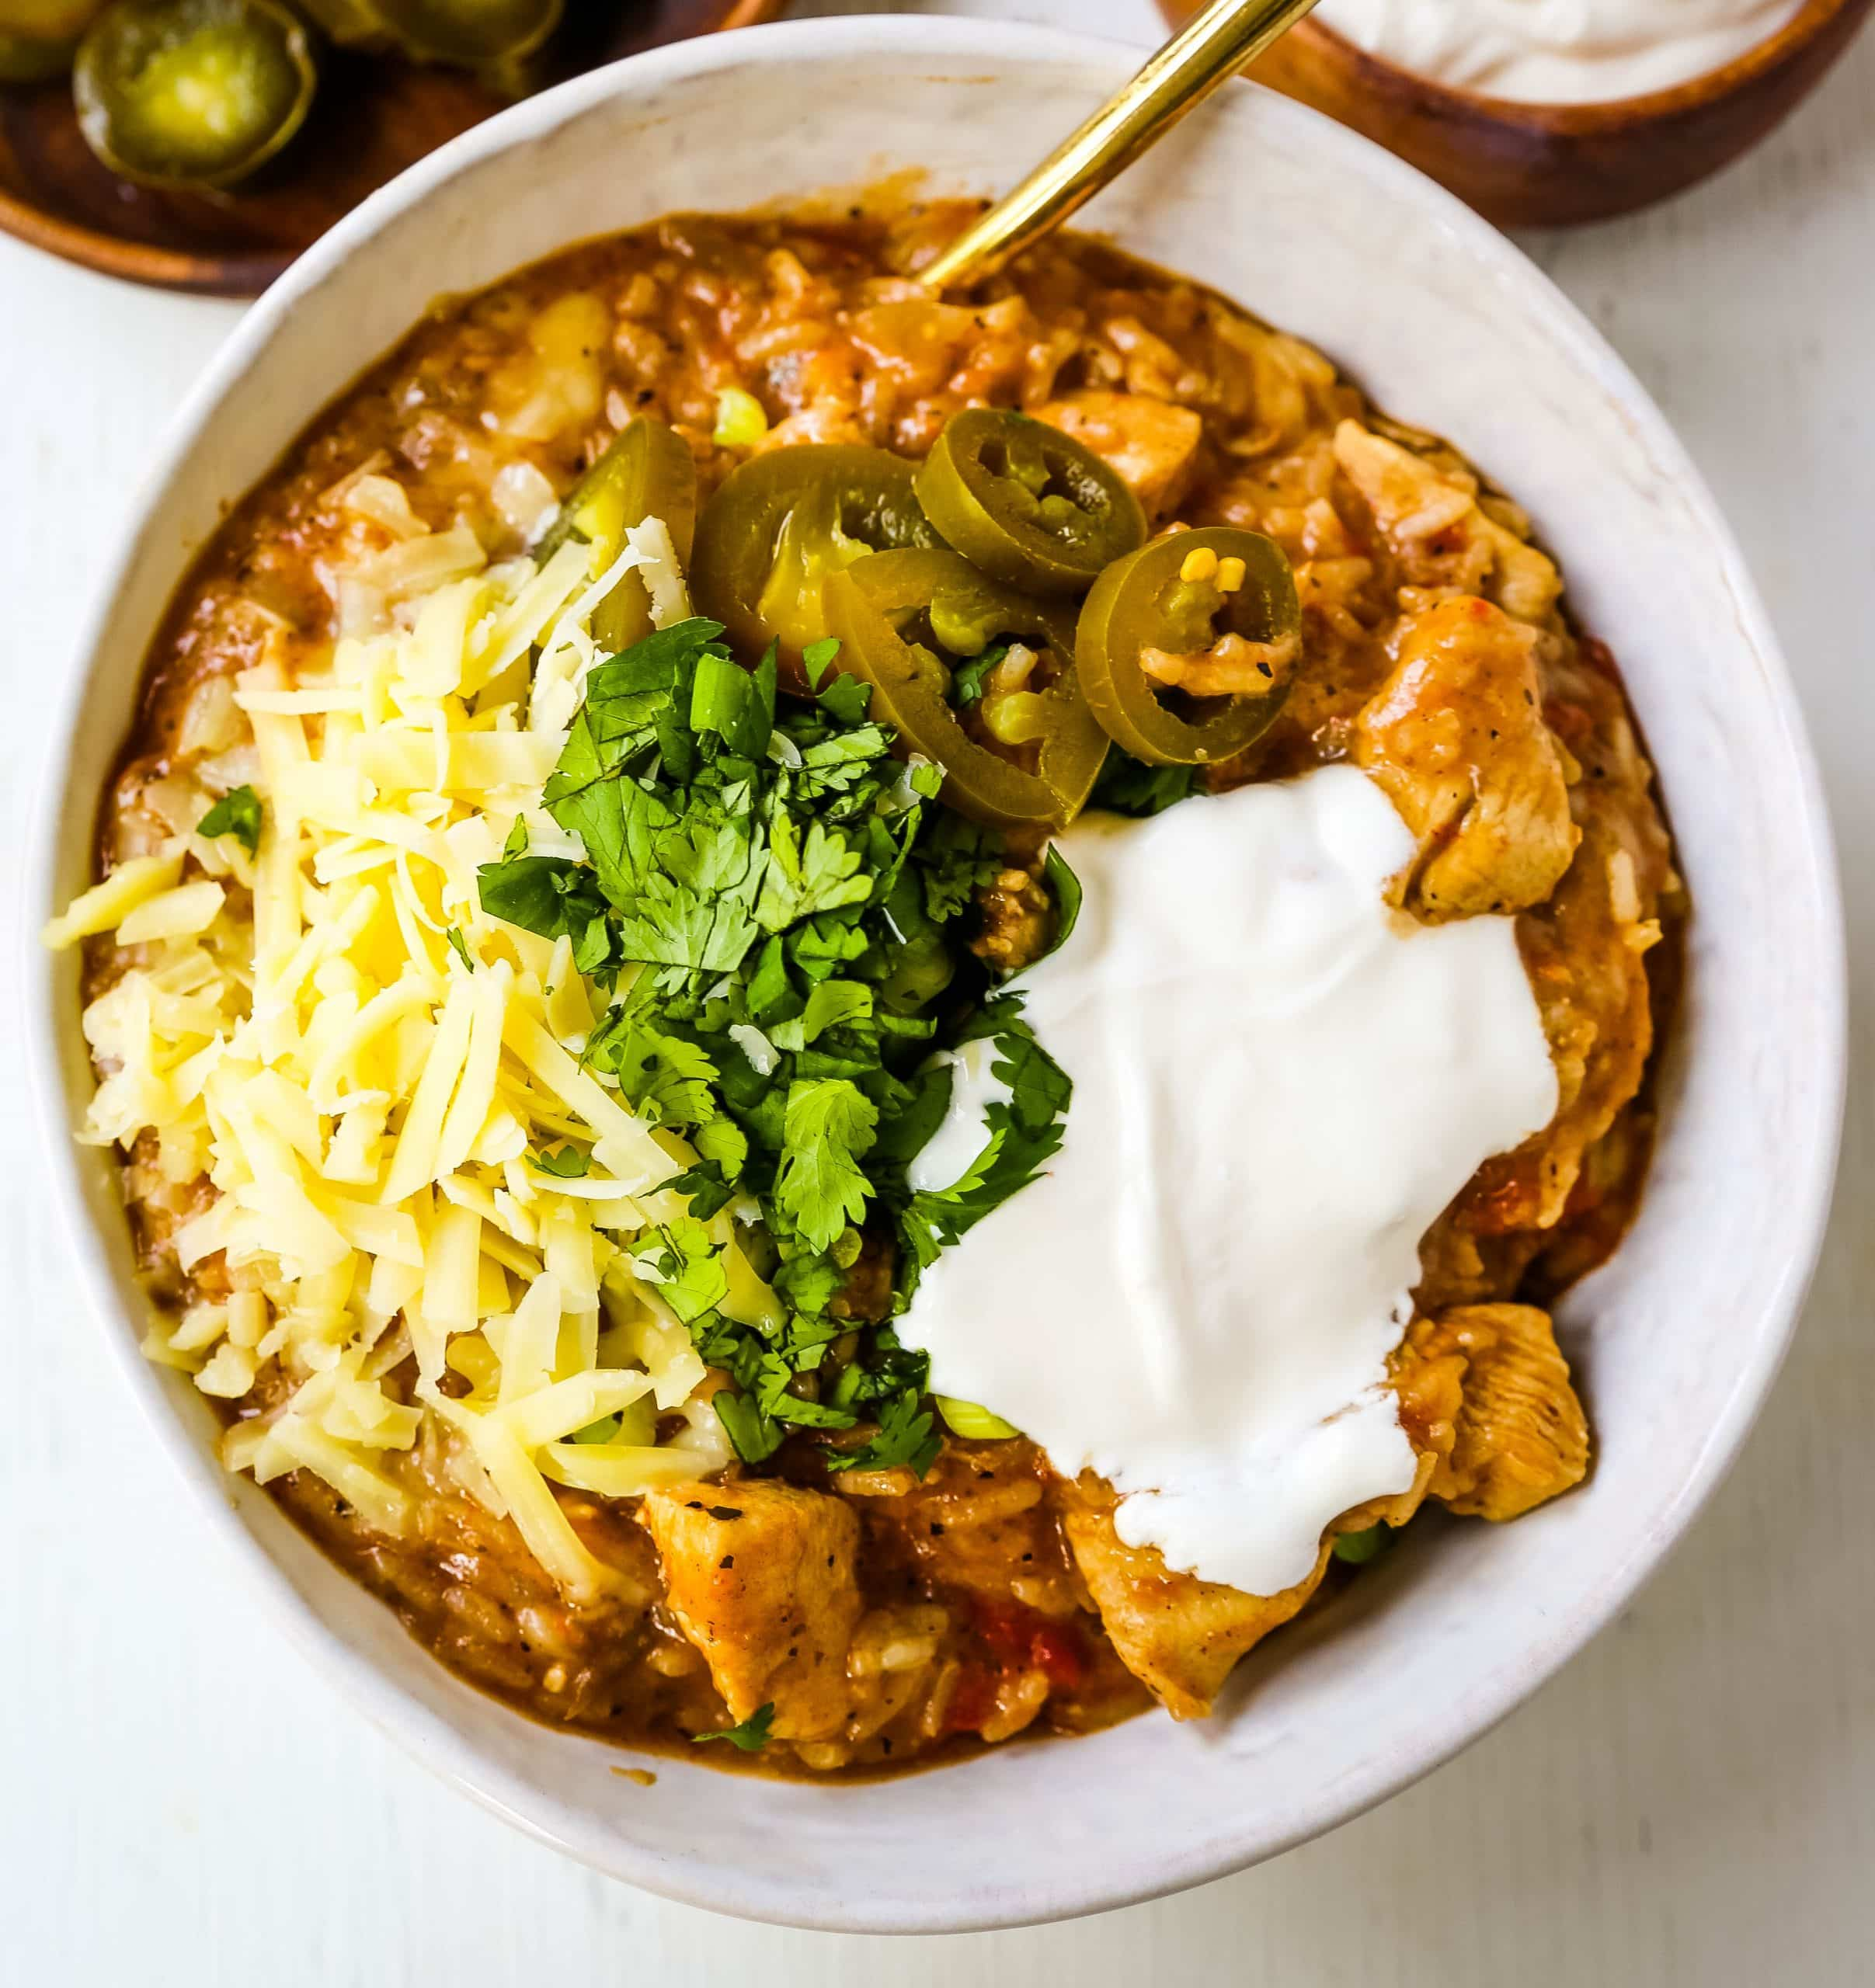 Cheesy Mexican Chicken and Rice Skillet Mexican chicken with green chilies, tomatoes, Mexican spices, rice, and cheese. An easy 30-minute dinner recipe! www.modernhoney.com #skilletdinner #30minutemeal #30minutedinner #mexicanfood #mexican